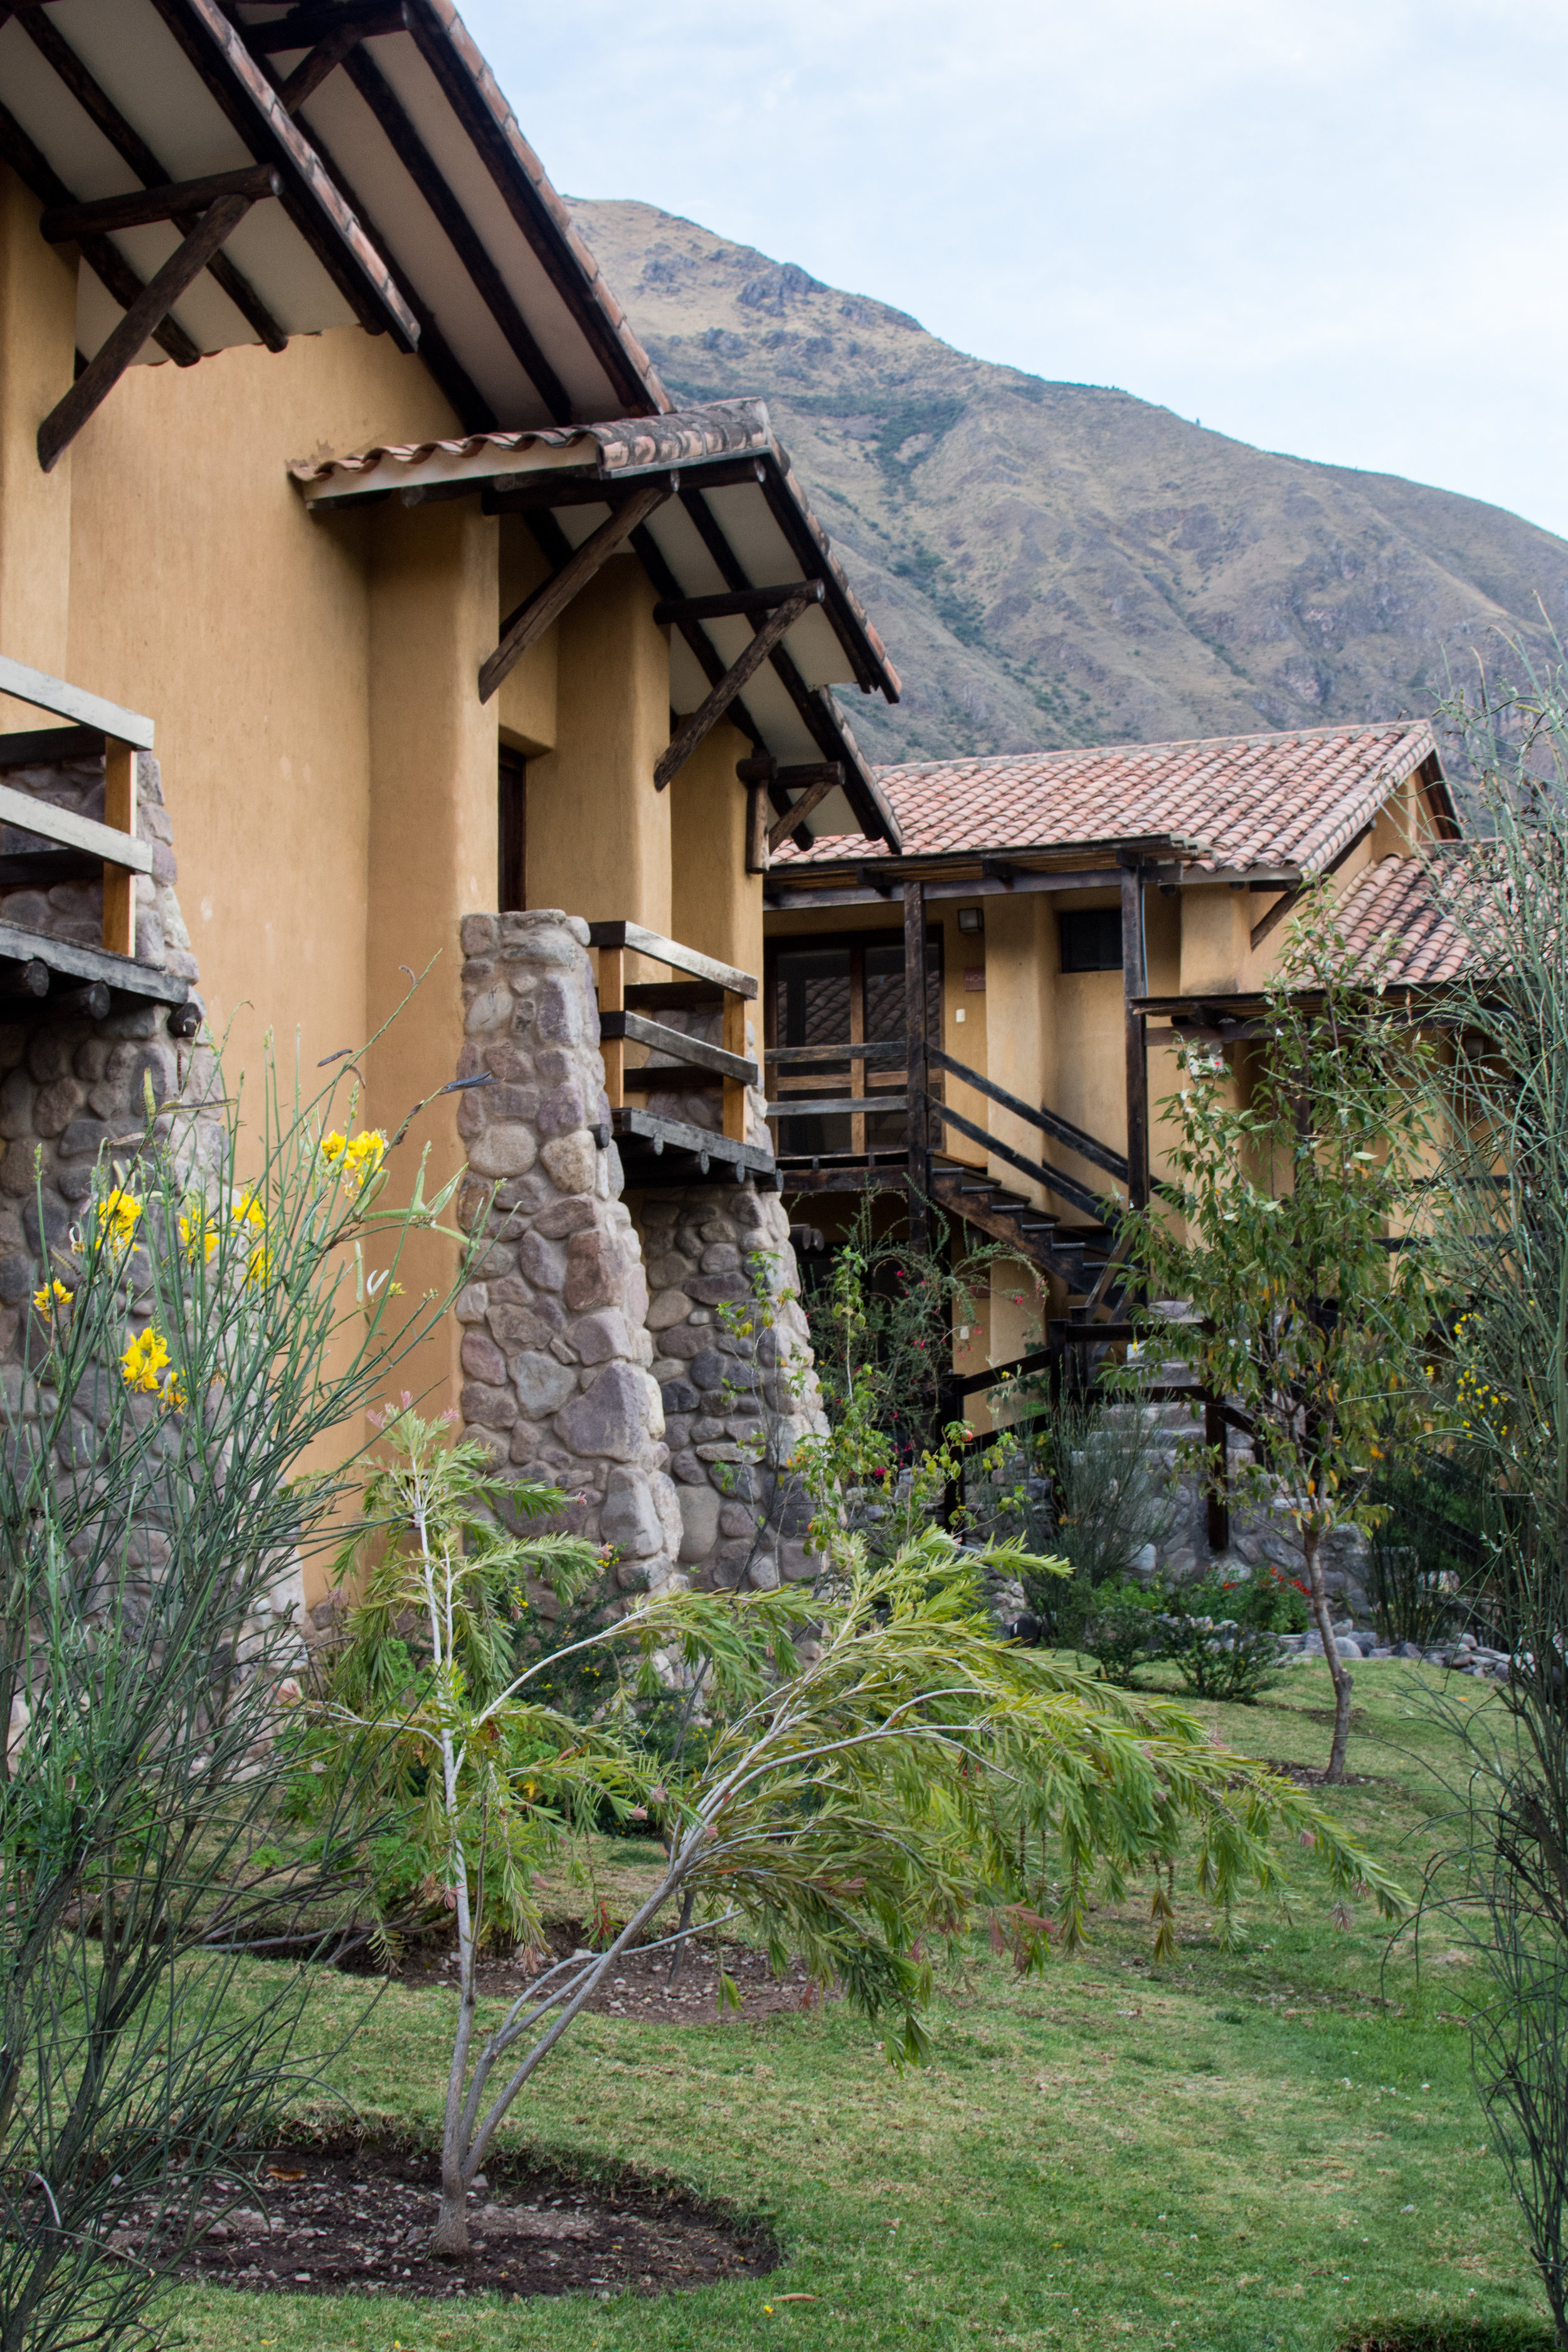 Where to Stay in Sacred Valley - Tierra Viva Valle Sagrado